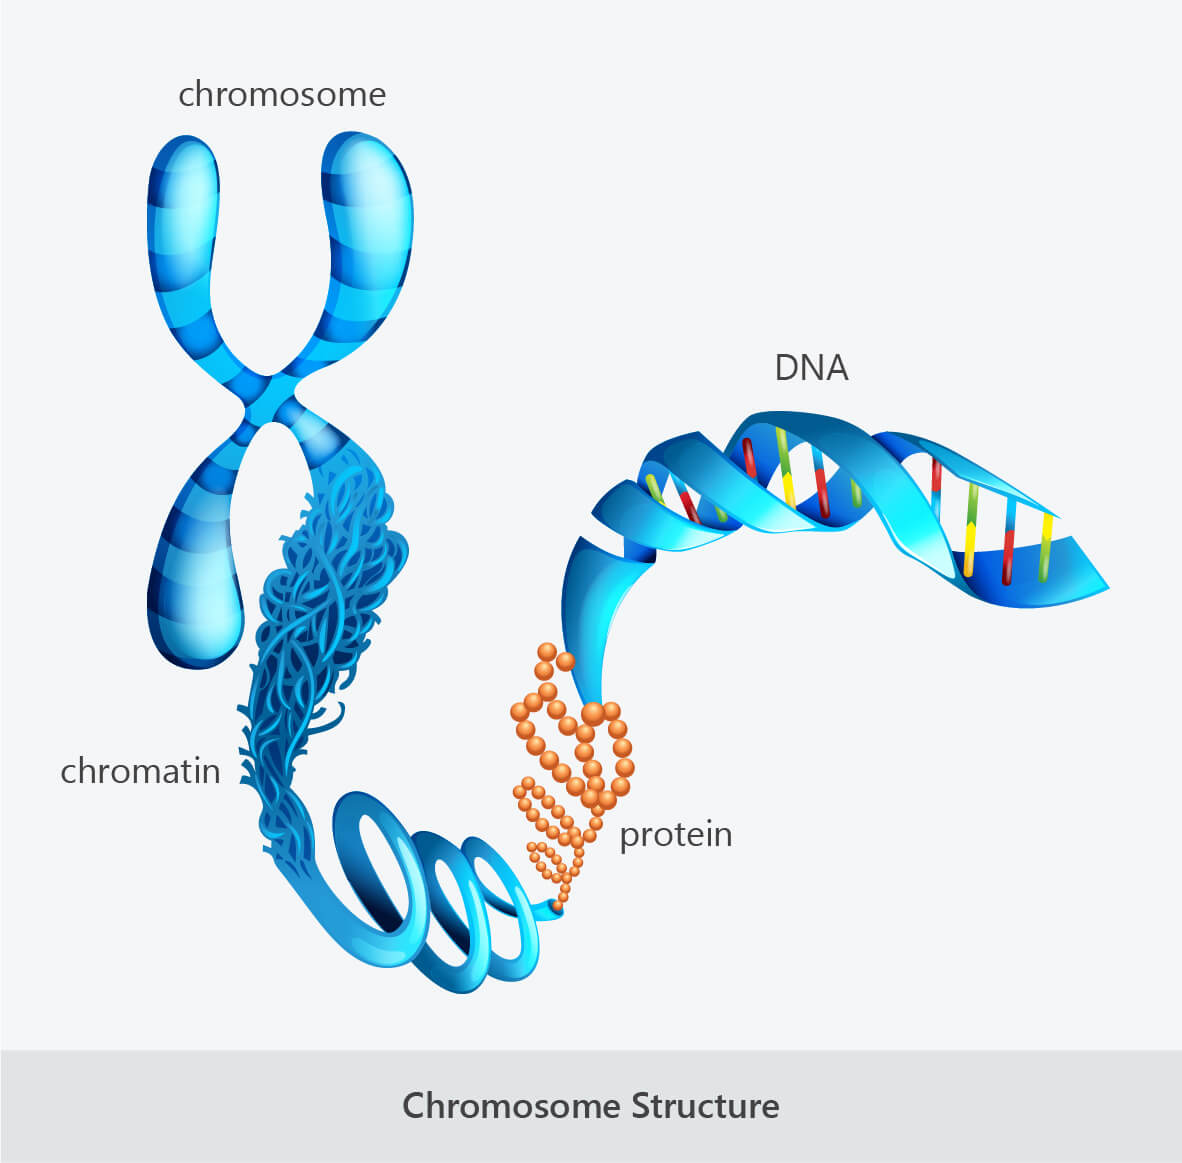 chromosome-structure-chromatin-protein-DNA